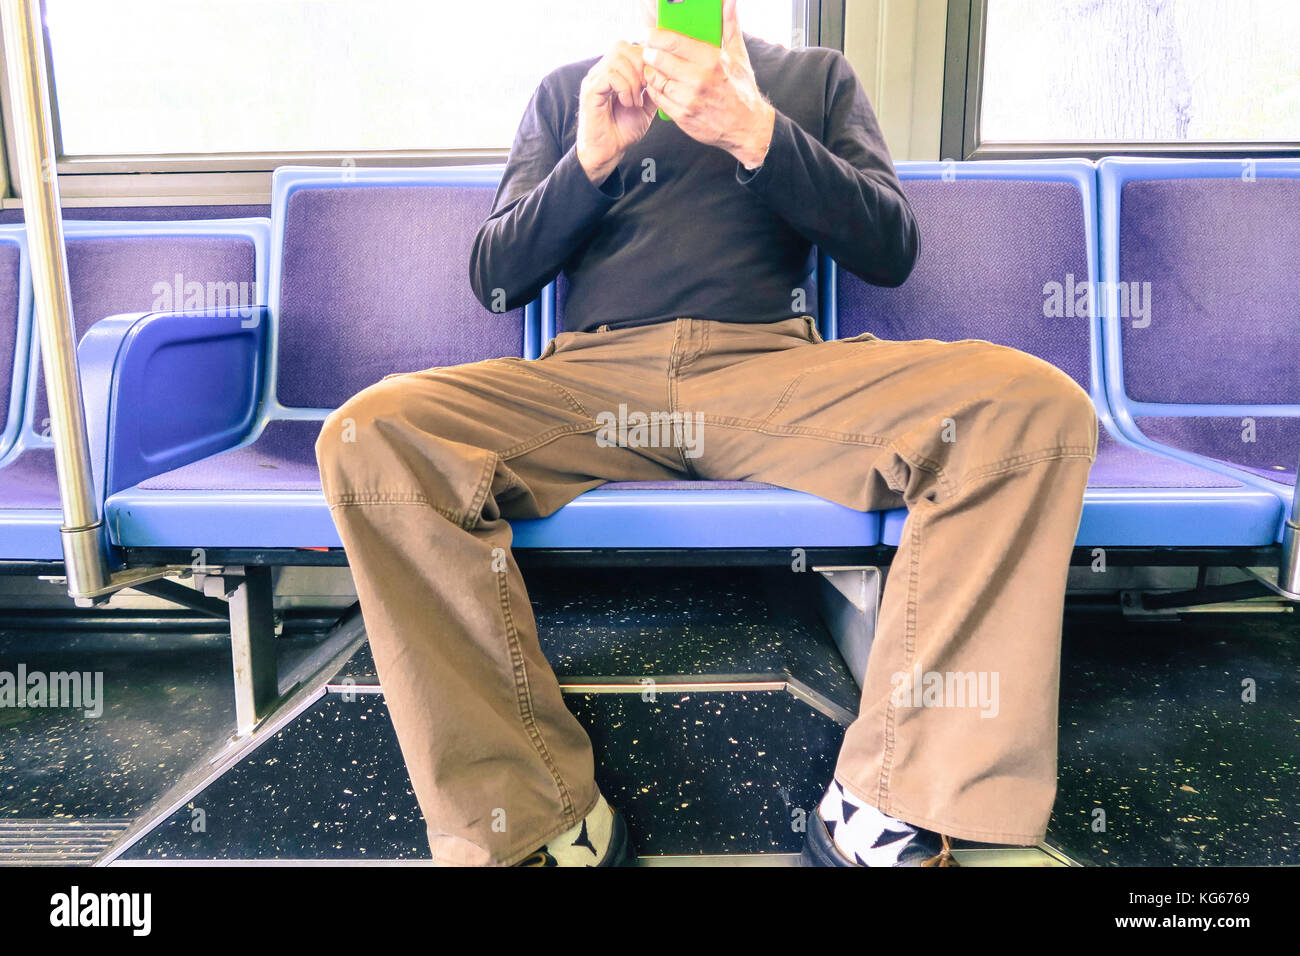 Man Hogging More than One Seat (man spreading) on New York City Bus, NYC, USA - Stock Image